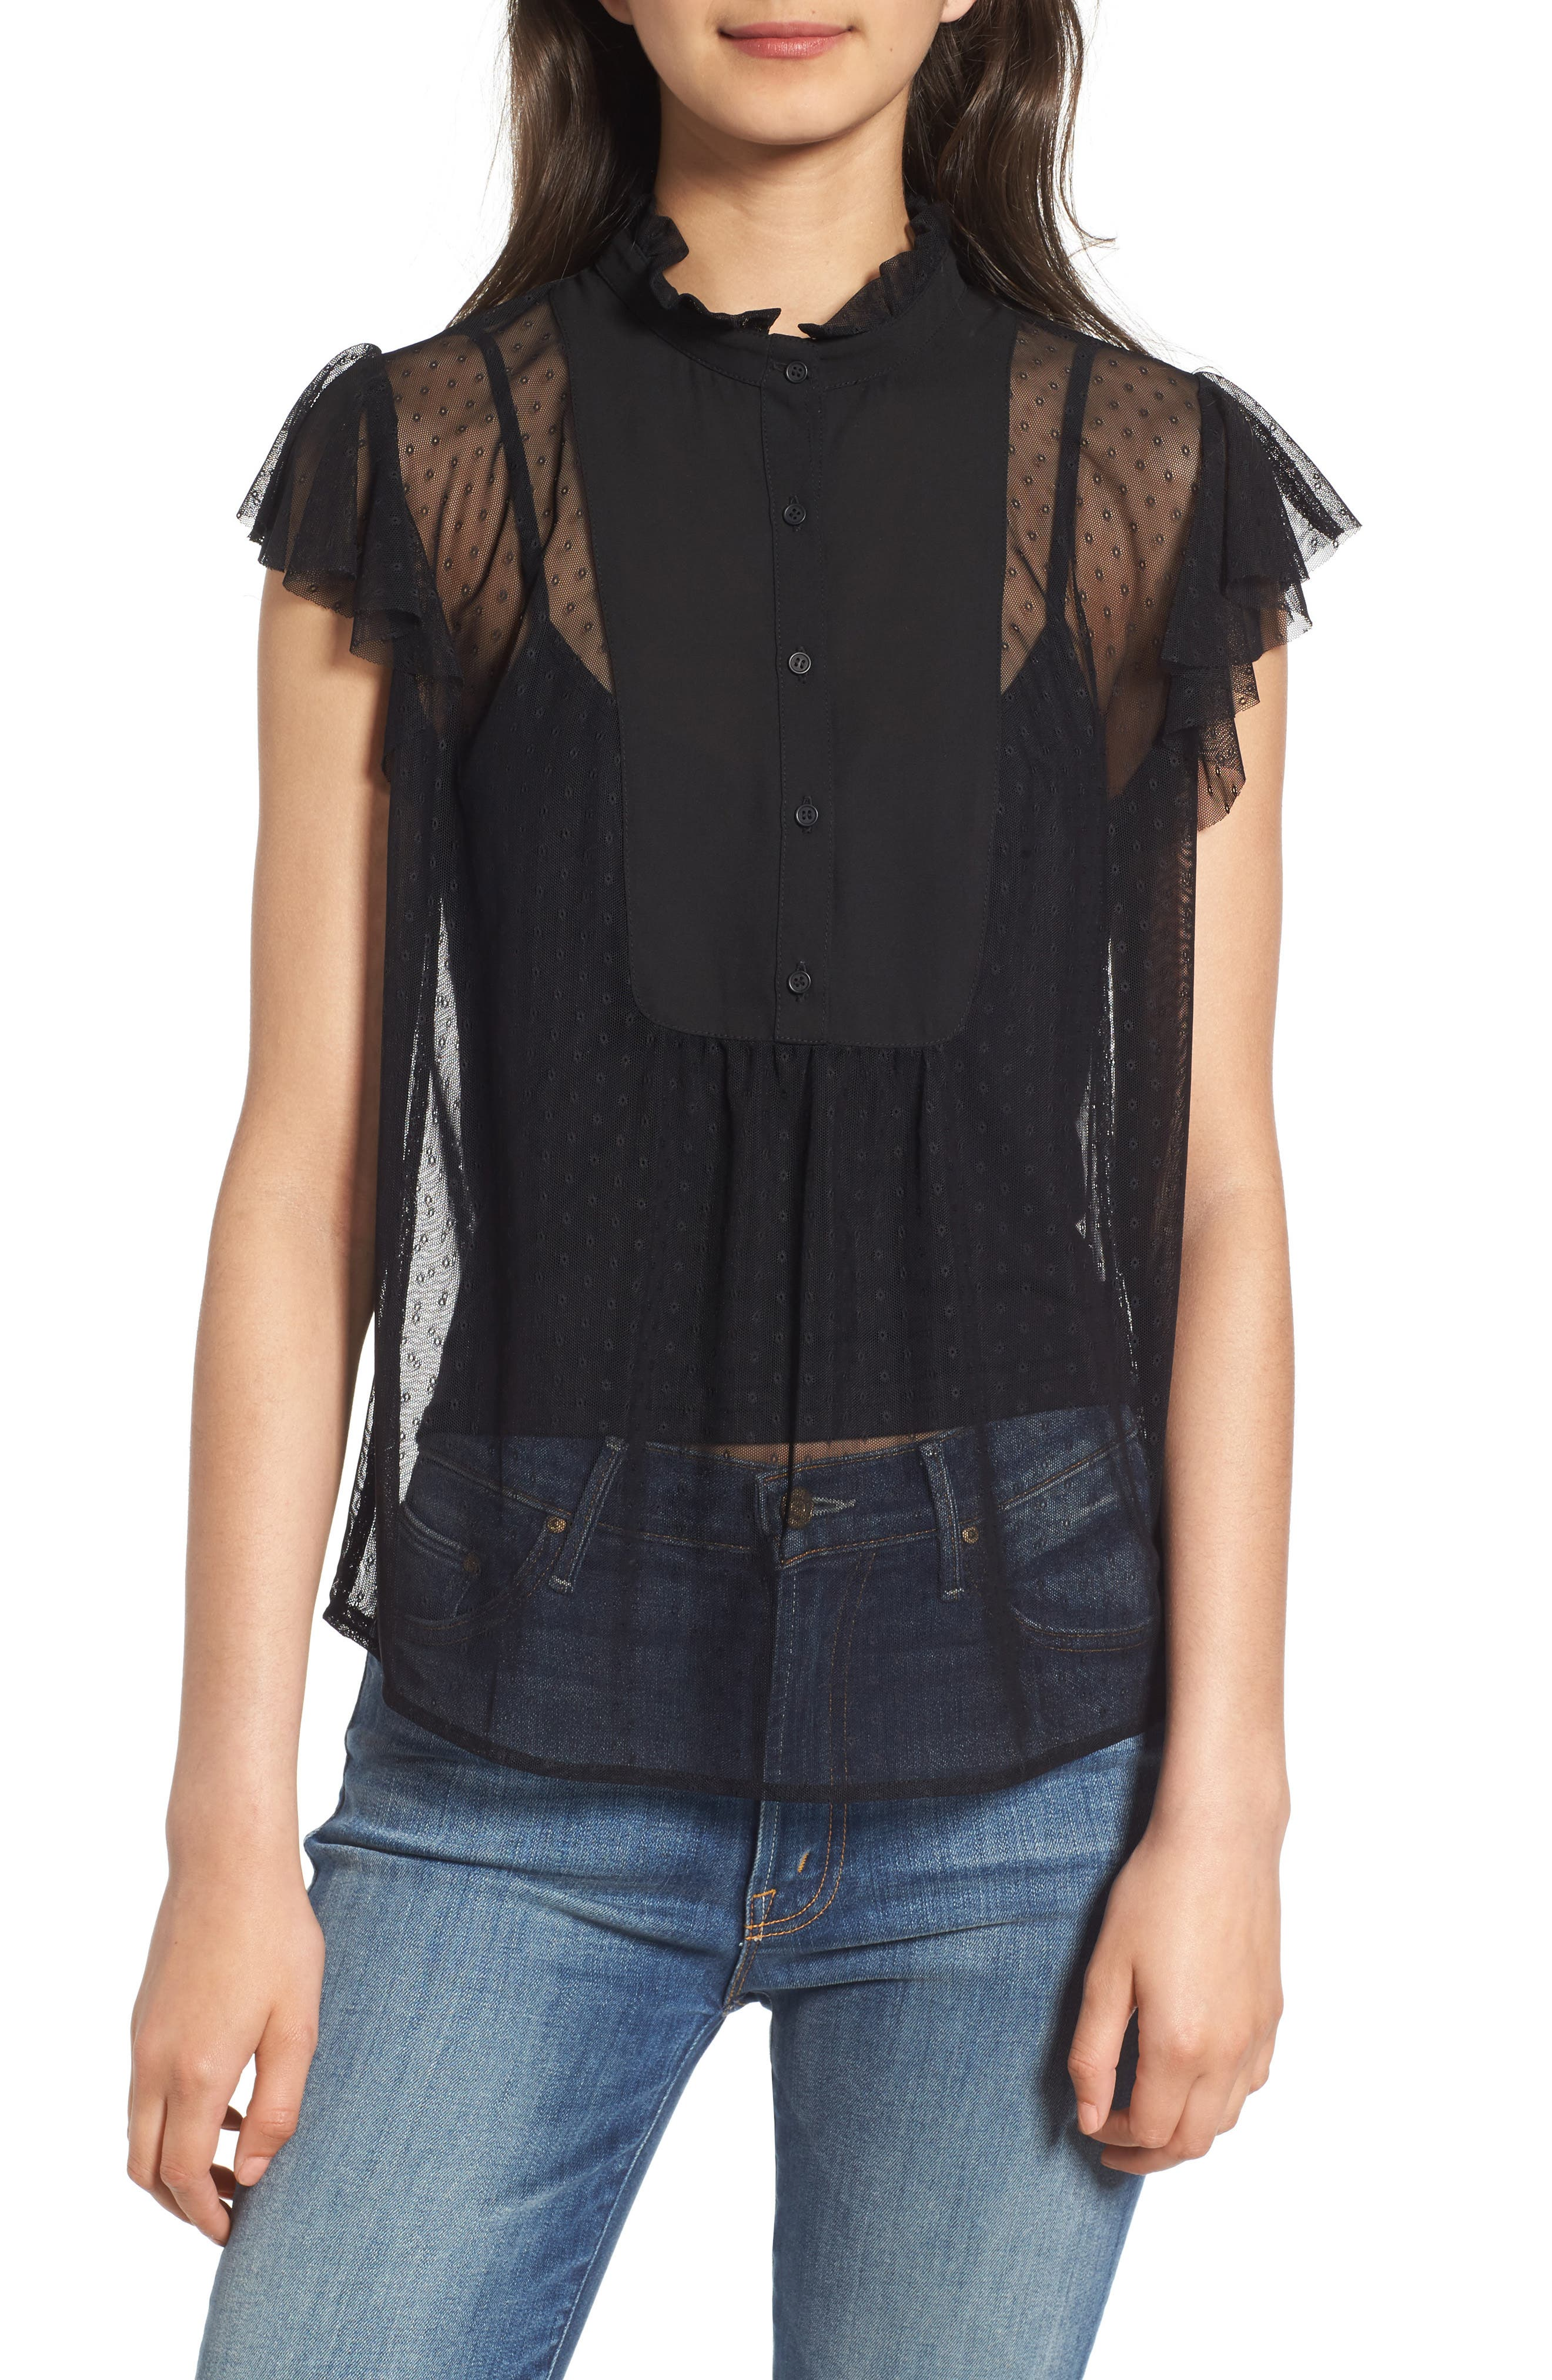 Hinge High Neck Lace Top